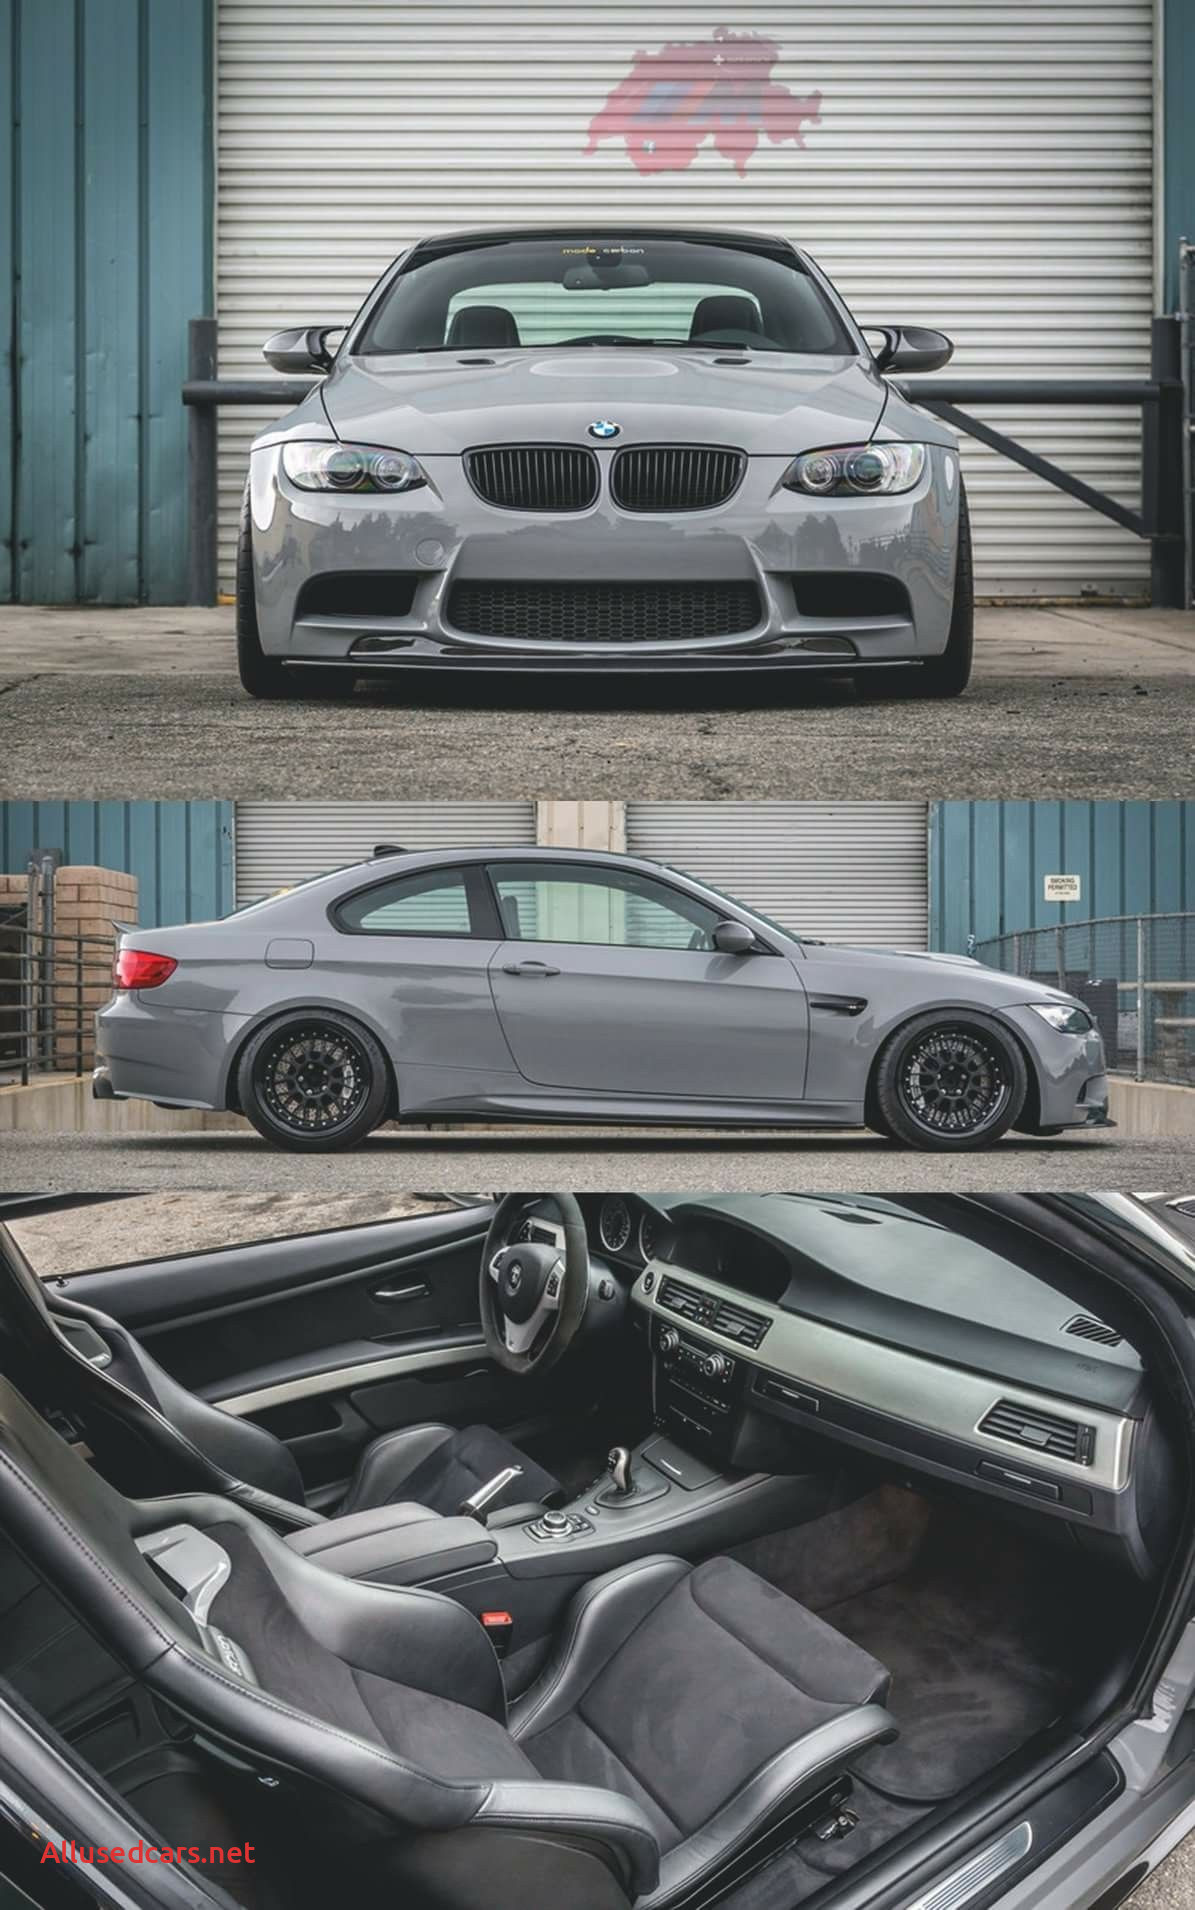 Bmw 335i Coupe Lovely Bmw E92 M3 Grey